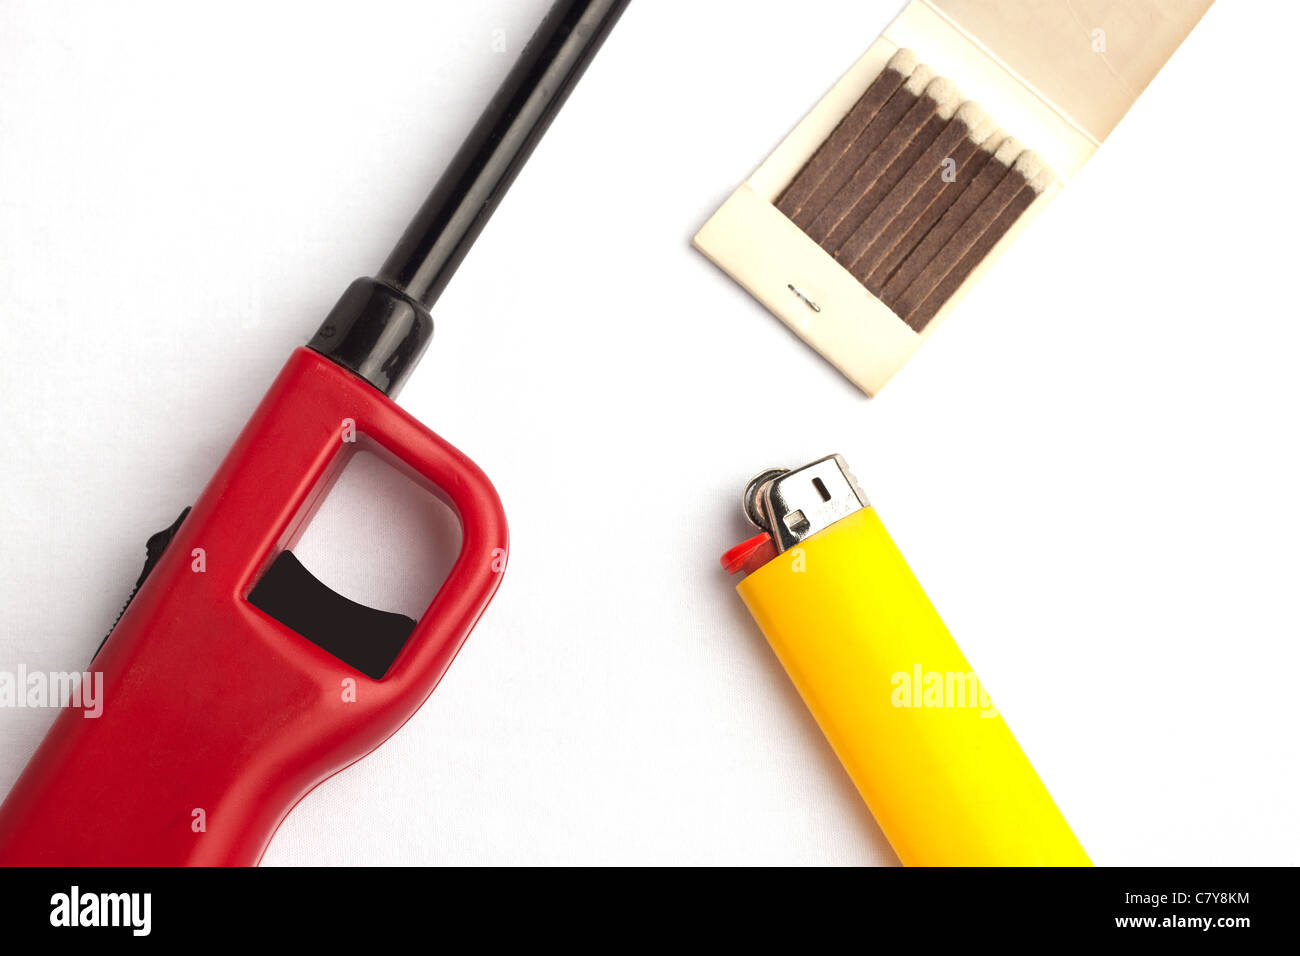 Variety of lighters against a white background including a gas lighter, disposable lighter, and matches - Stock Image